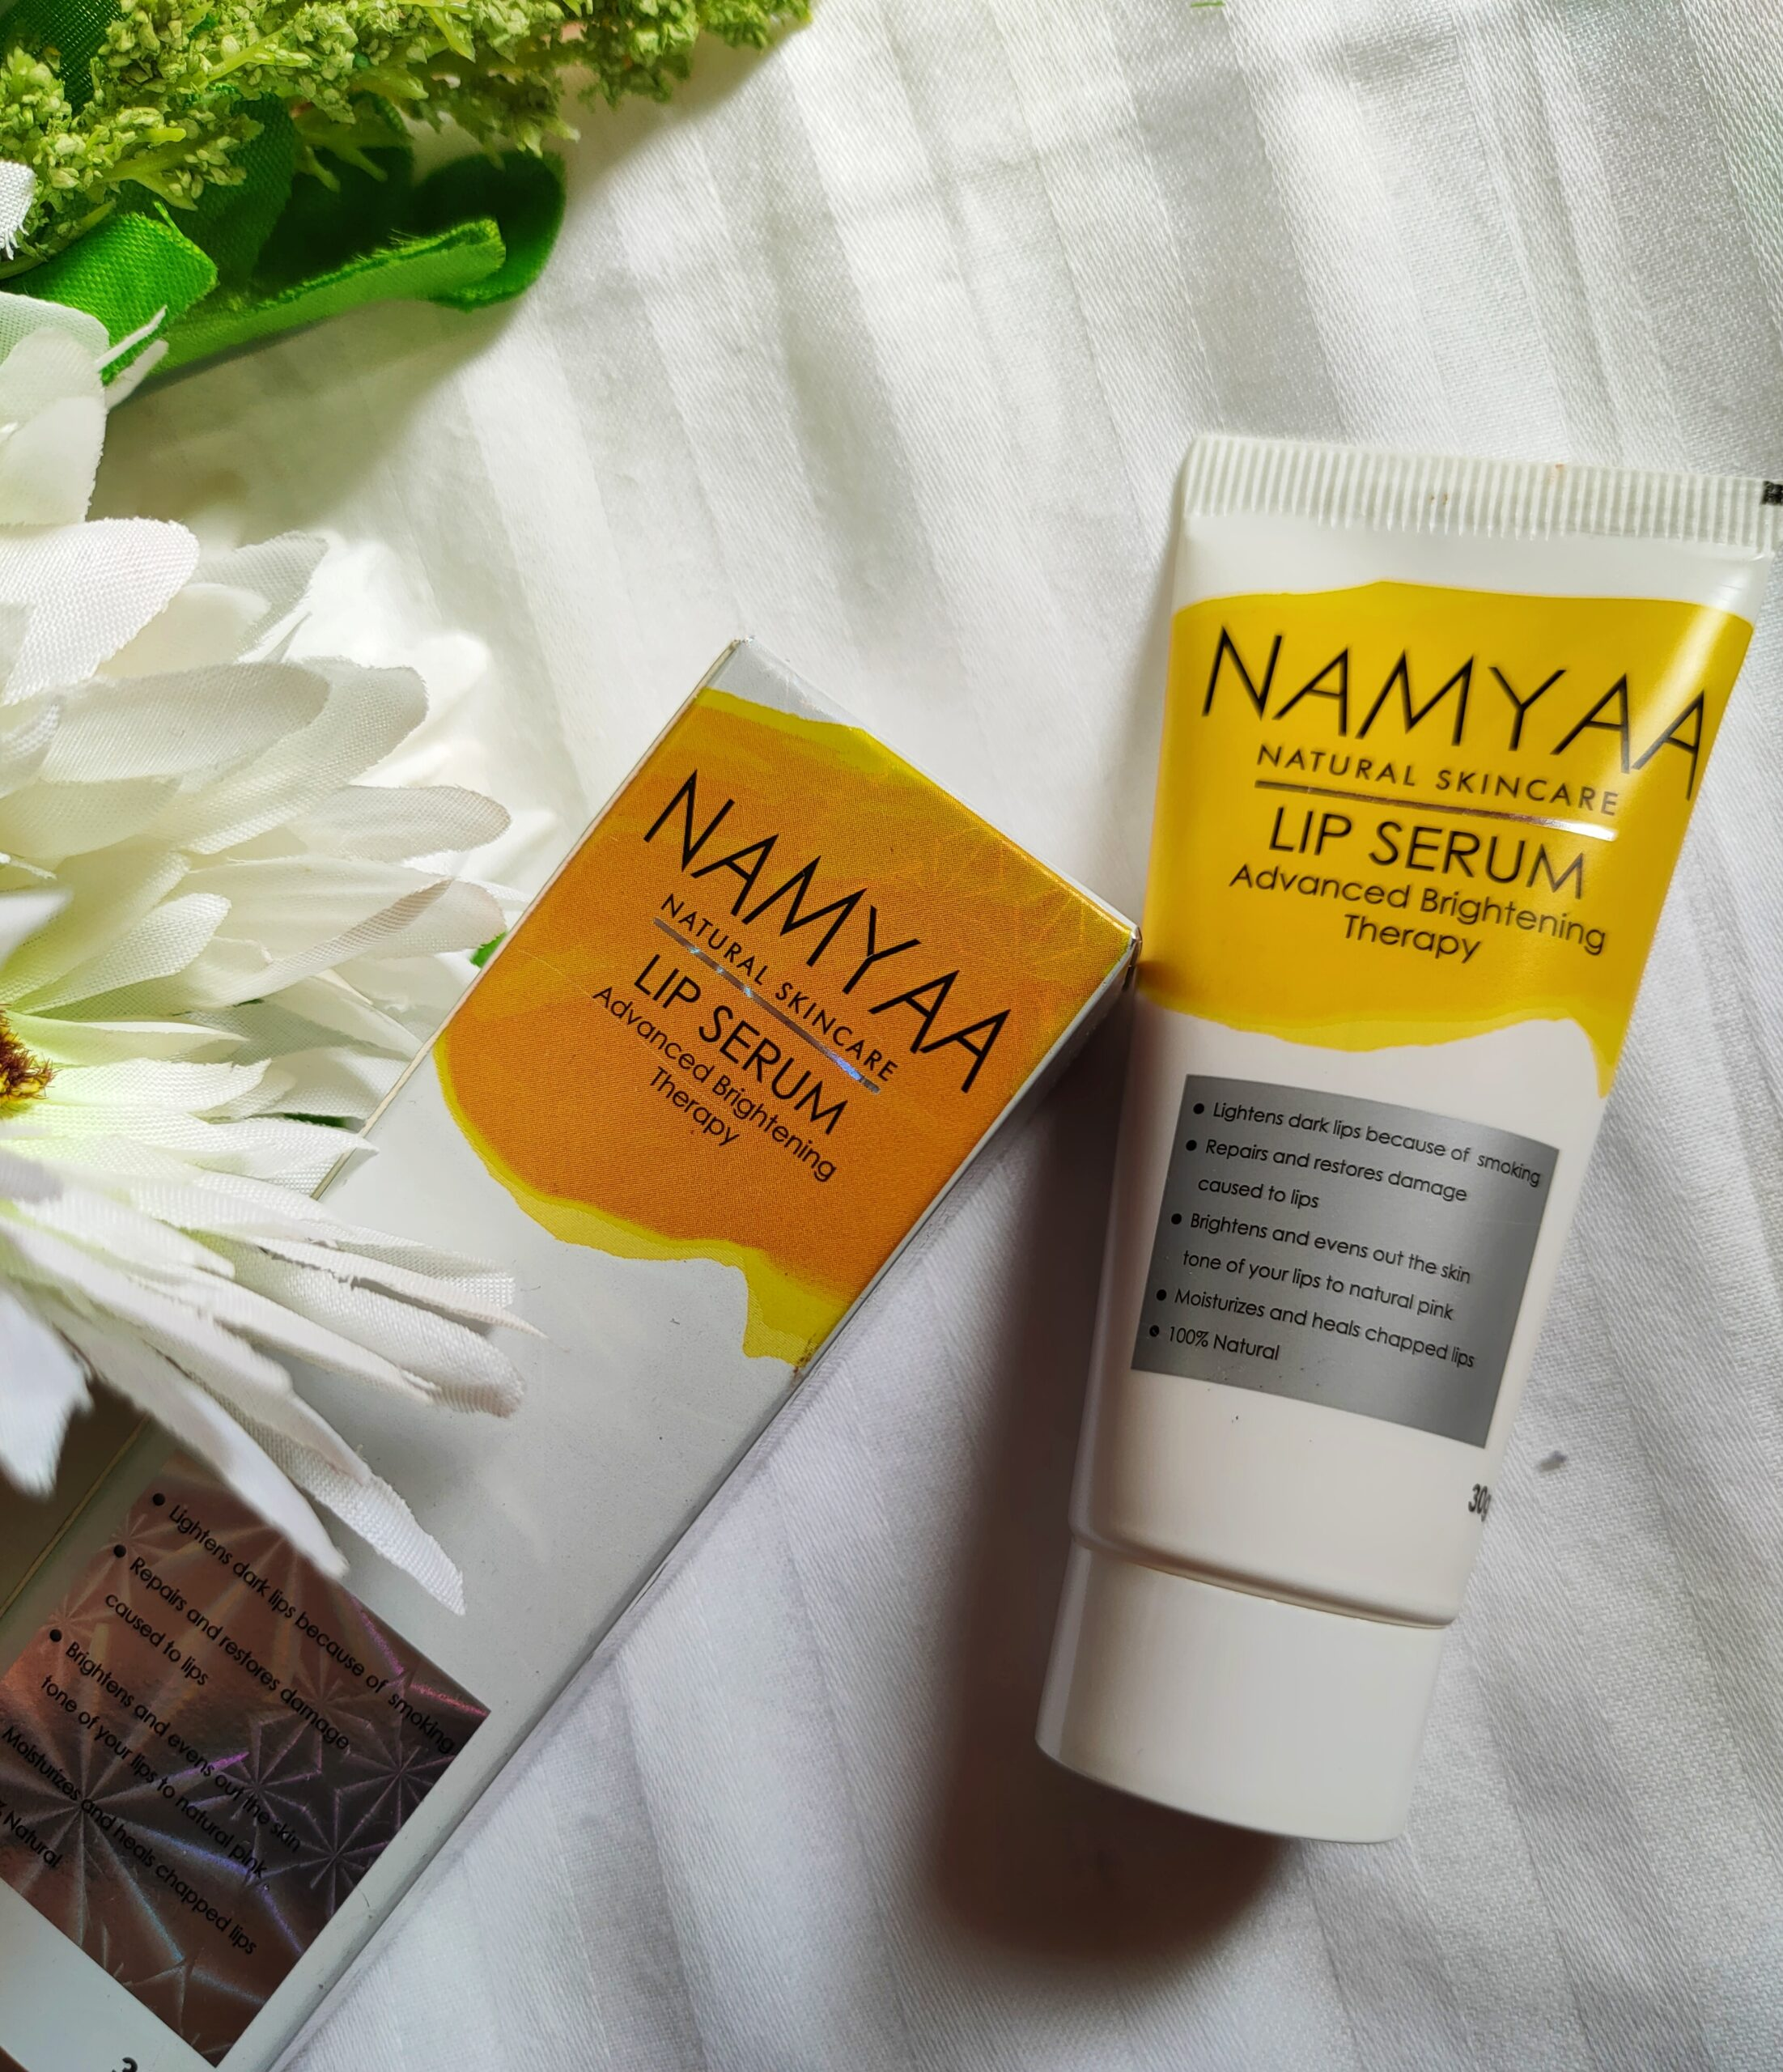 Namyaa Natural Skincare Lip Serum Review